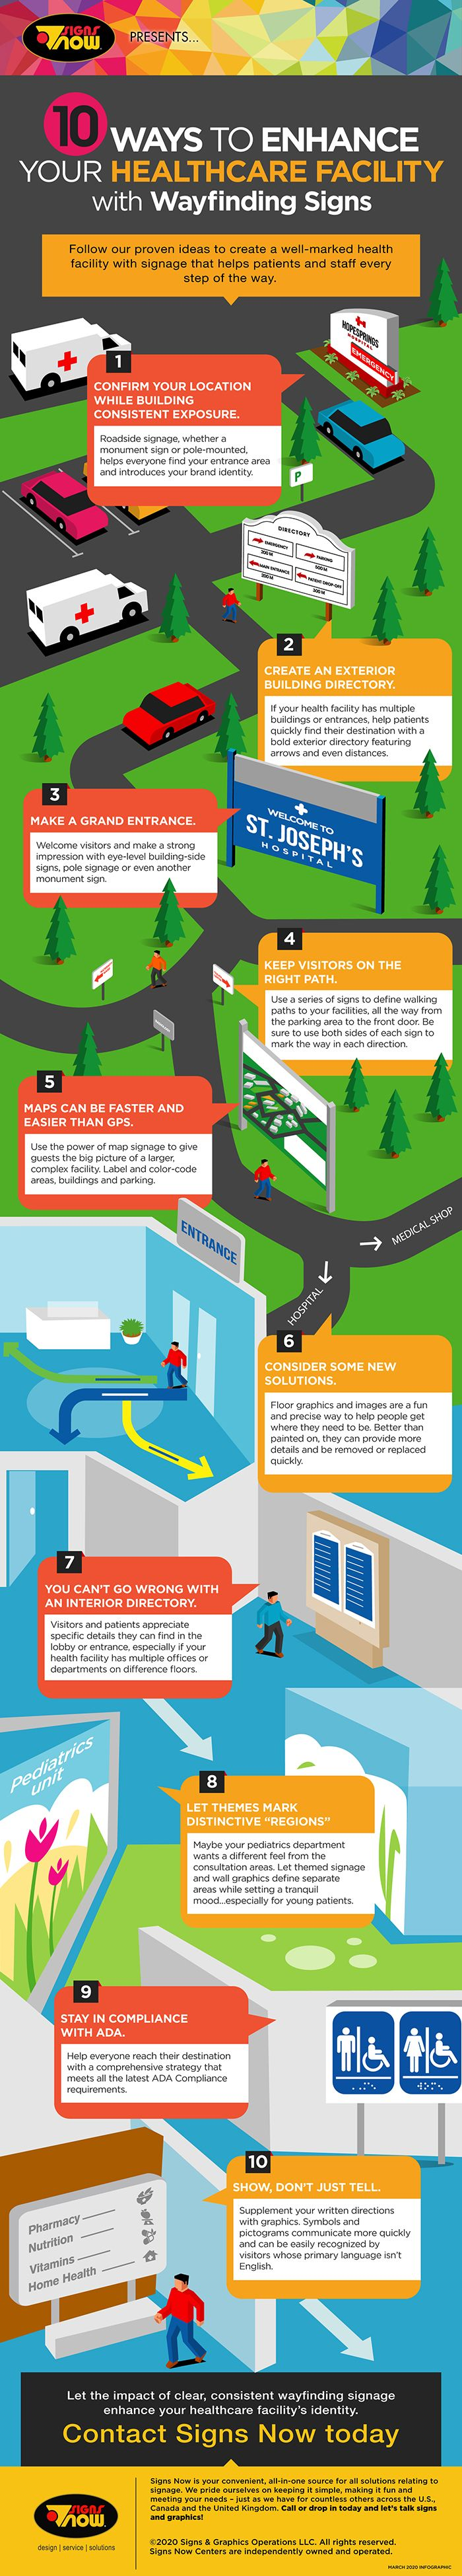 Infographic on 10 Ways to Enhance your Healthcare Facility with Wayfinding Signs